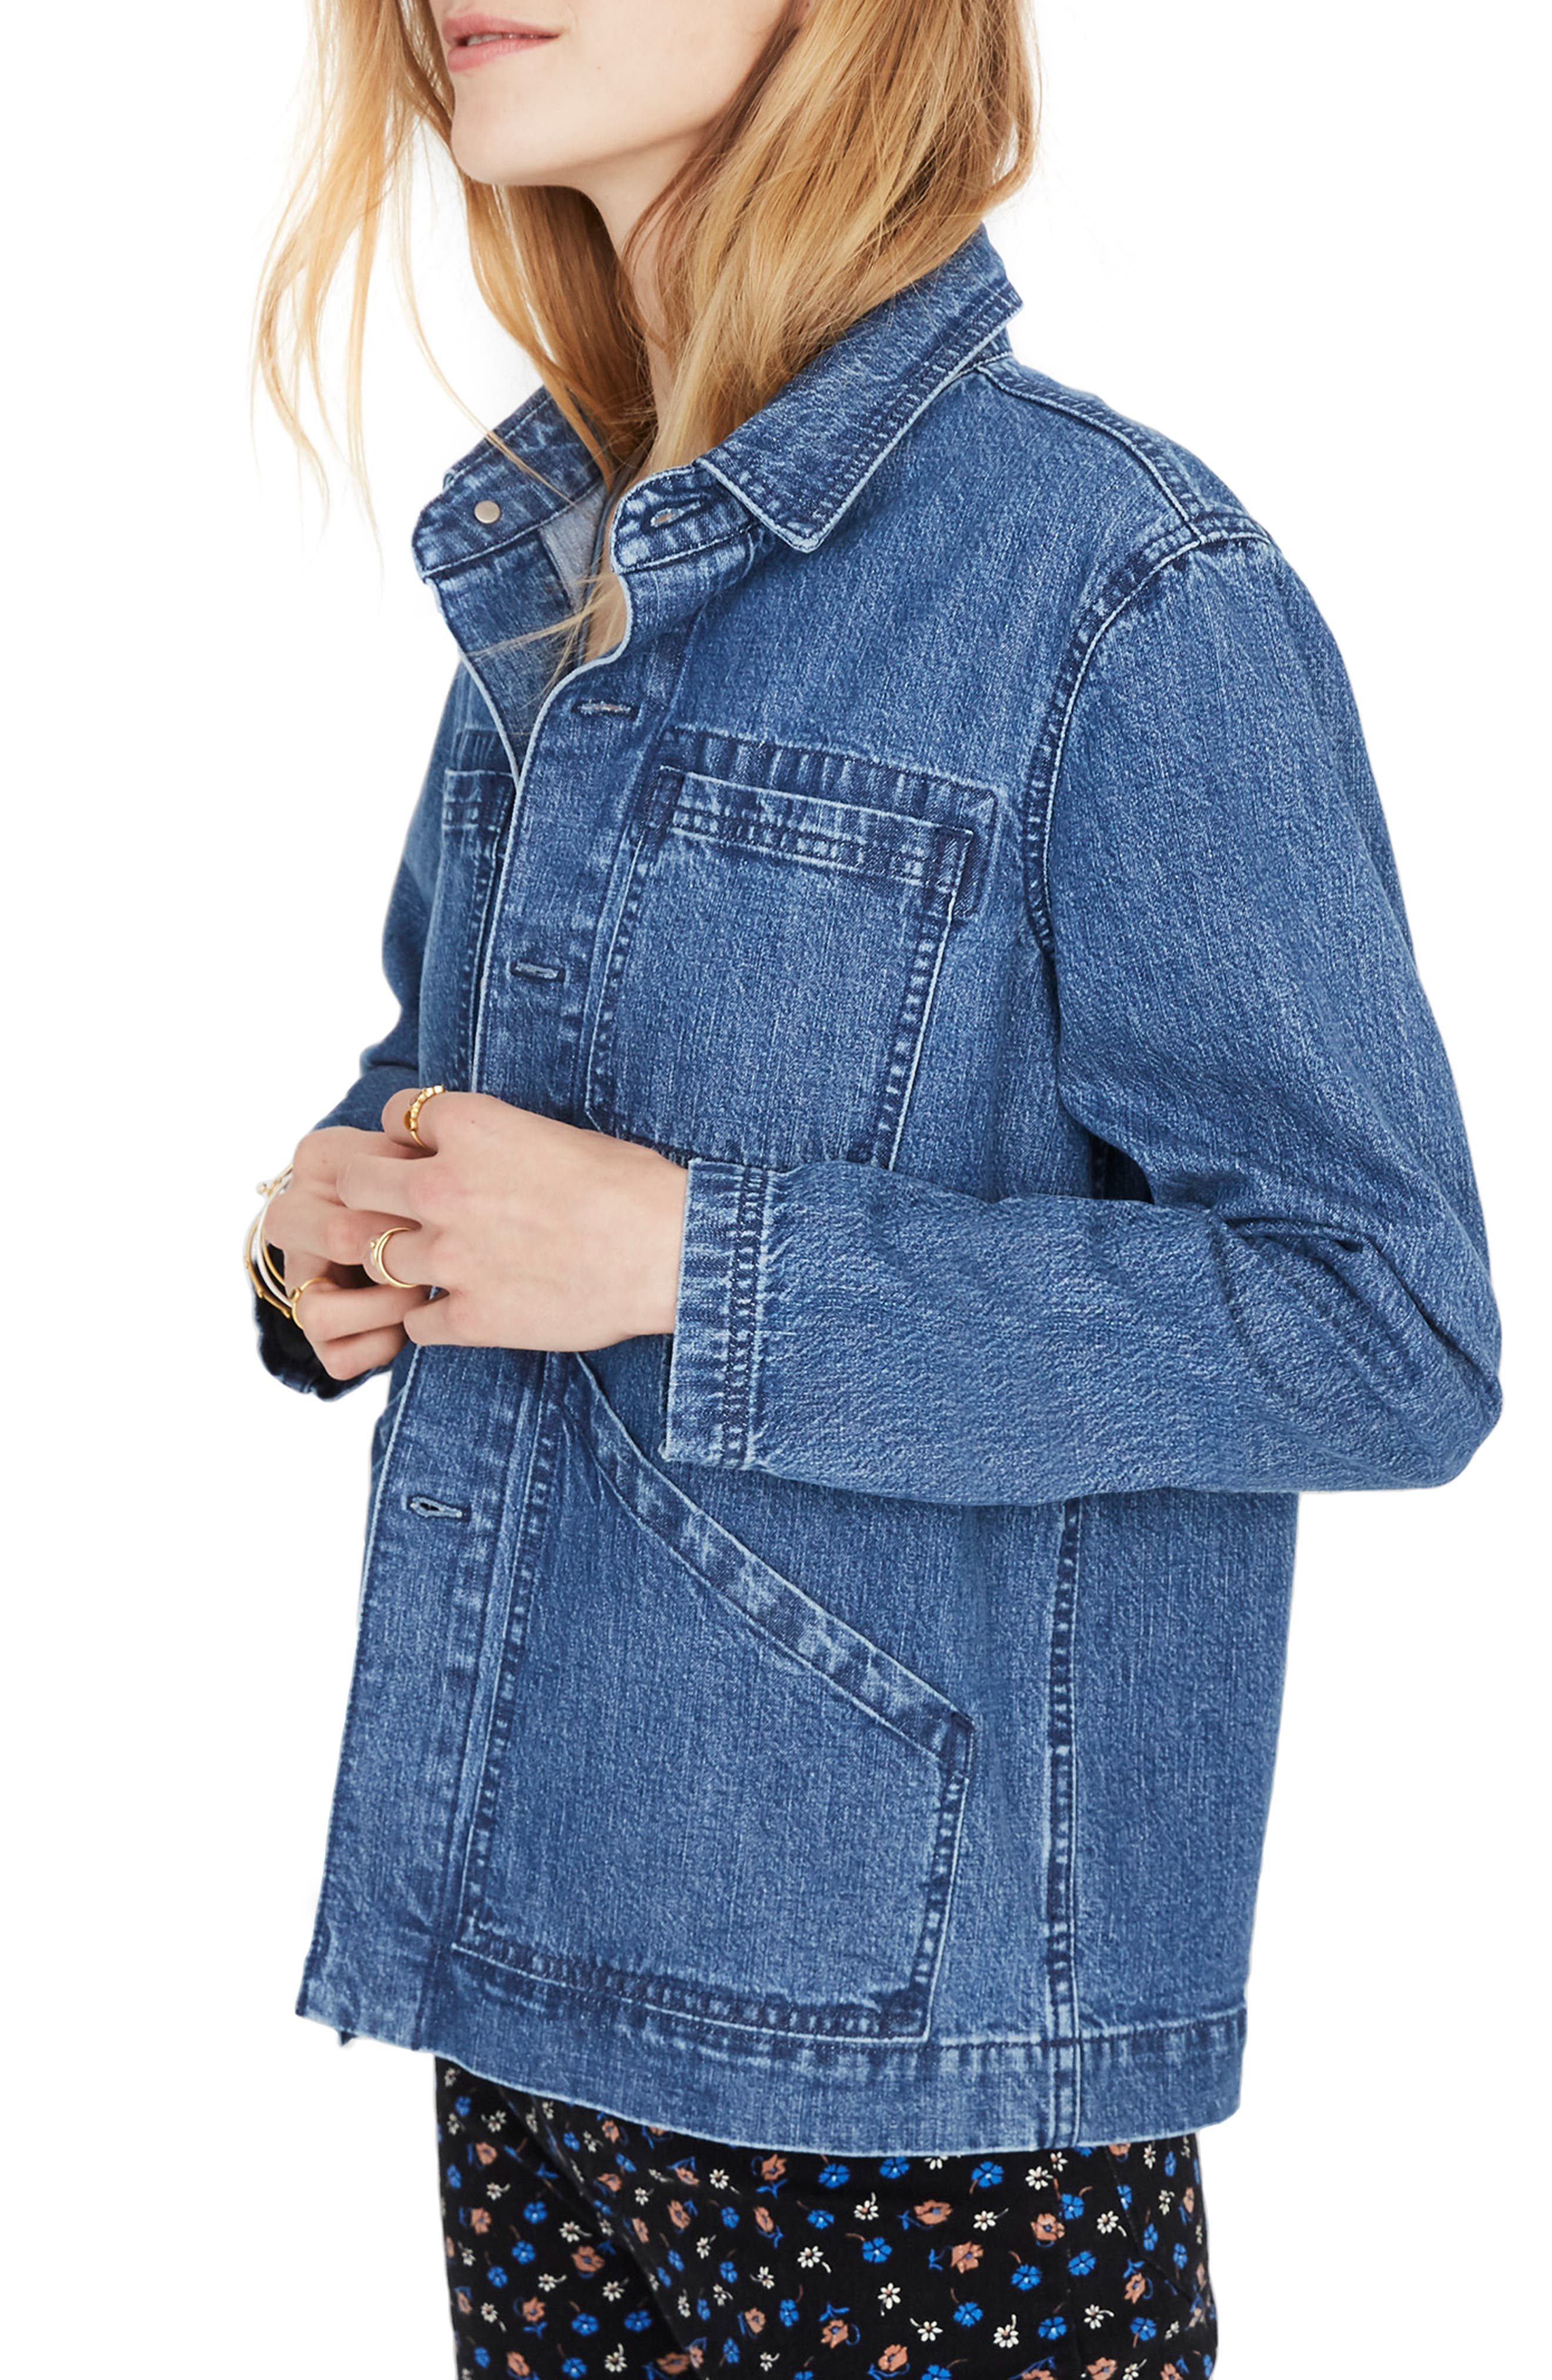 MADEWELL, Denim Patch Pocket Chore Coat, Alternate thumbnail 4, color, 400